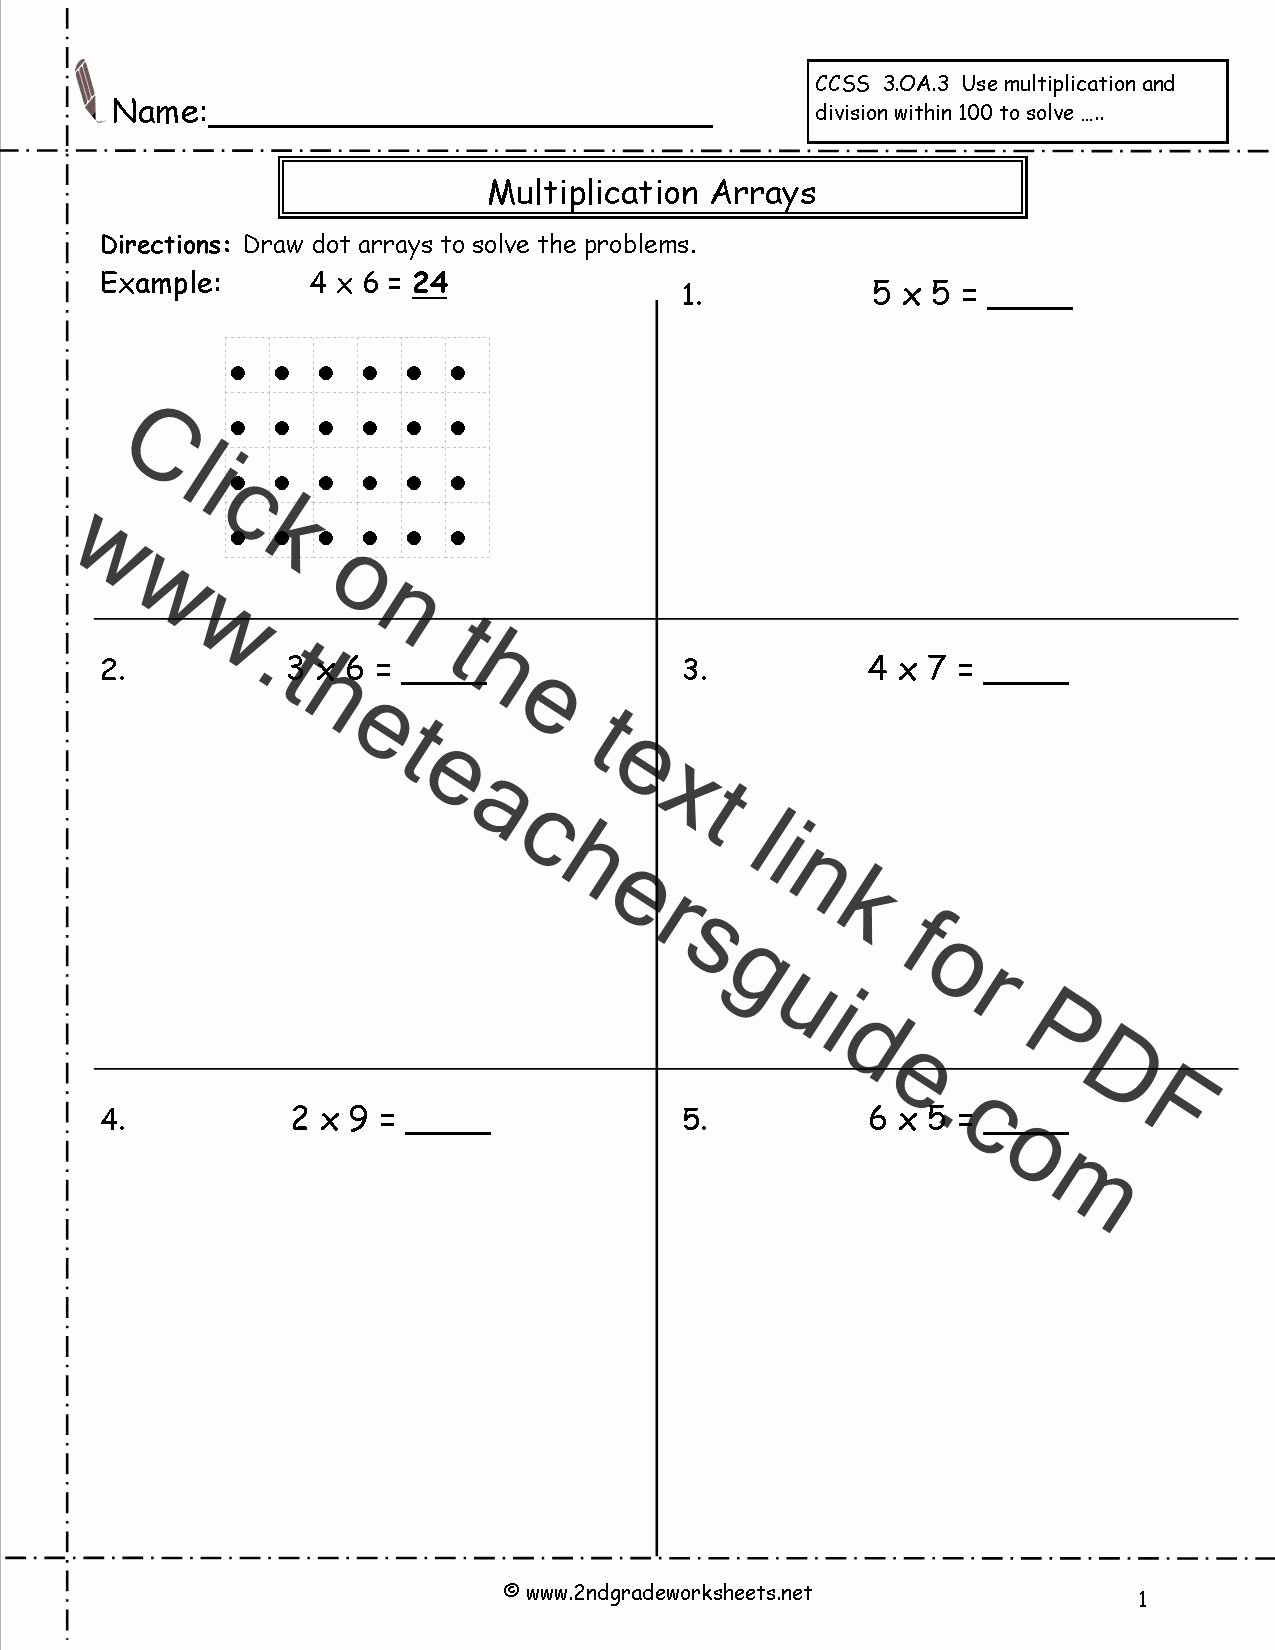 hight resolution of Area Model Multiplication Worksheets Awesome area Model Multiplication  Worksheets Pdf In 2020 – Printable Math Worksheets